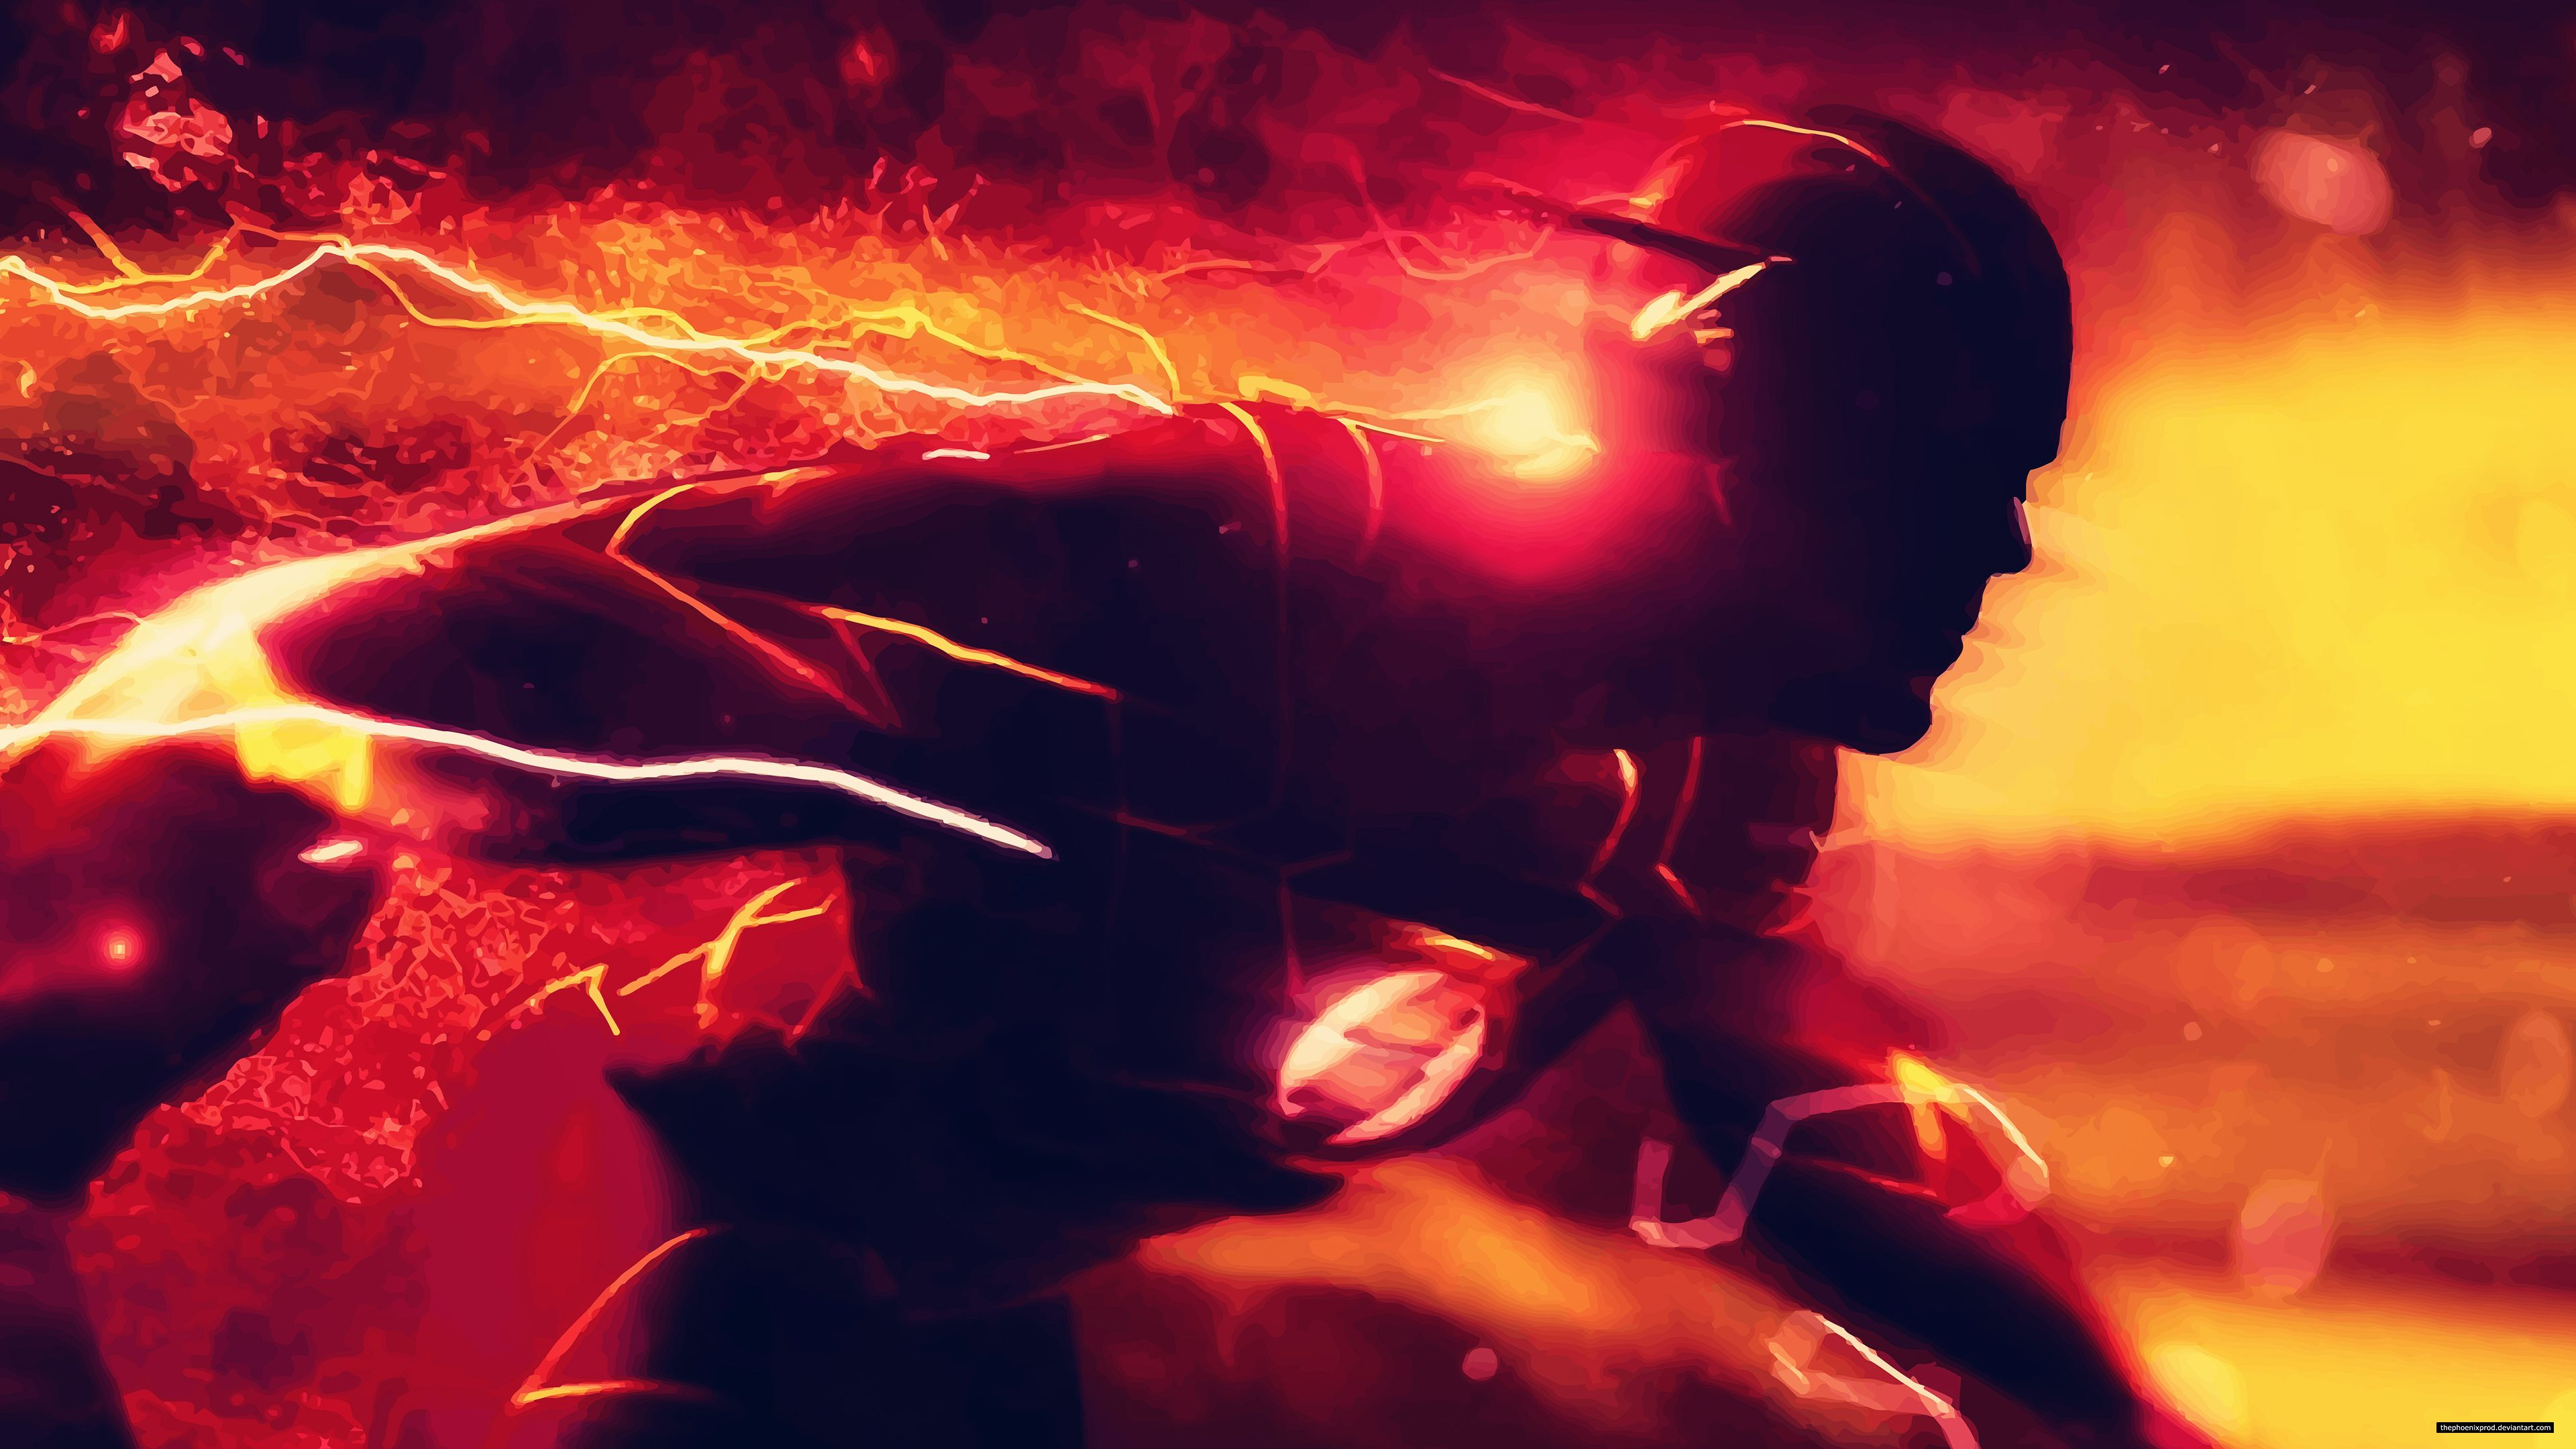 Comics Flash Hd Wallpaper Background Imagess Flash Wallpaper Dc Comics Wallpaper 4k Wallpapers For Pc